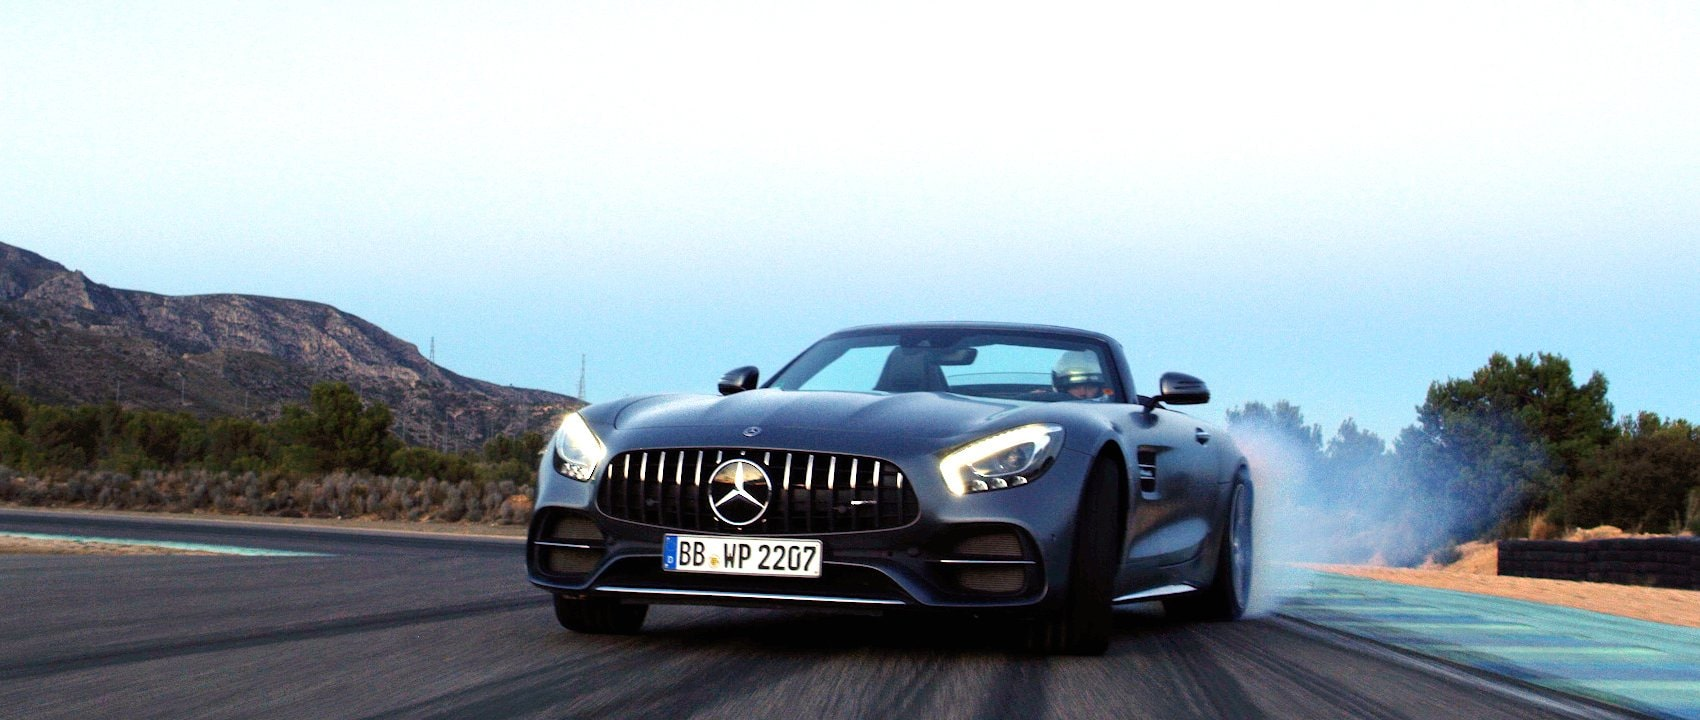 The Mercedes-AMG GT C Roadster (R 190) in magnetite black on the race track.